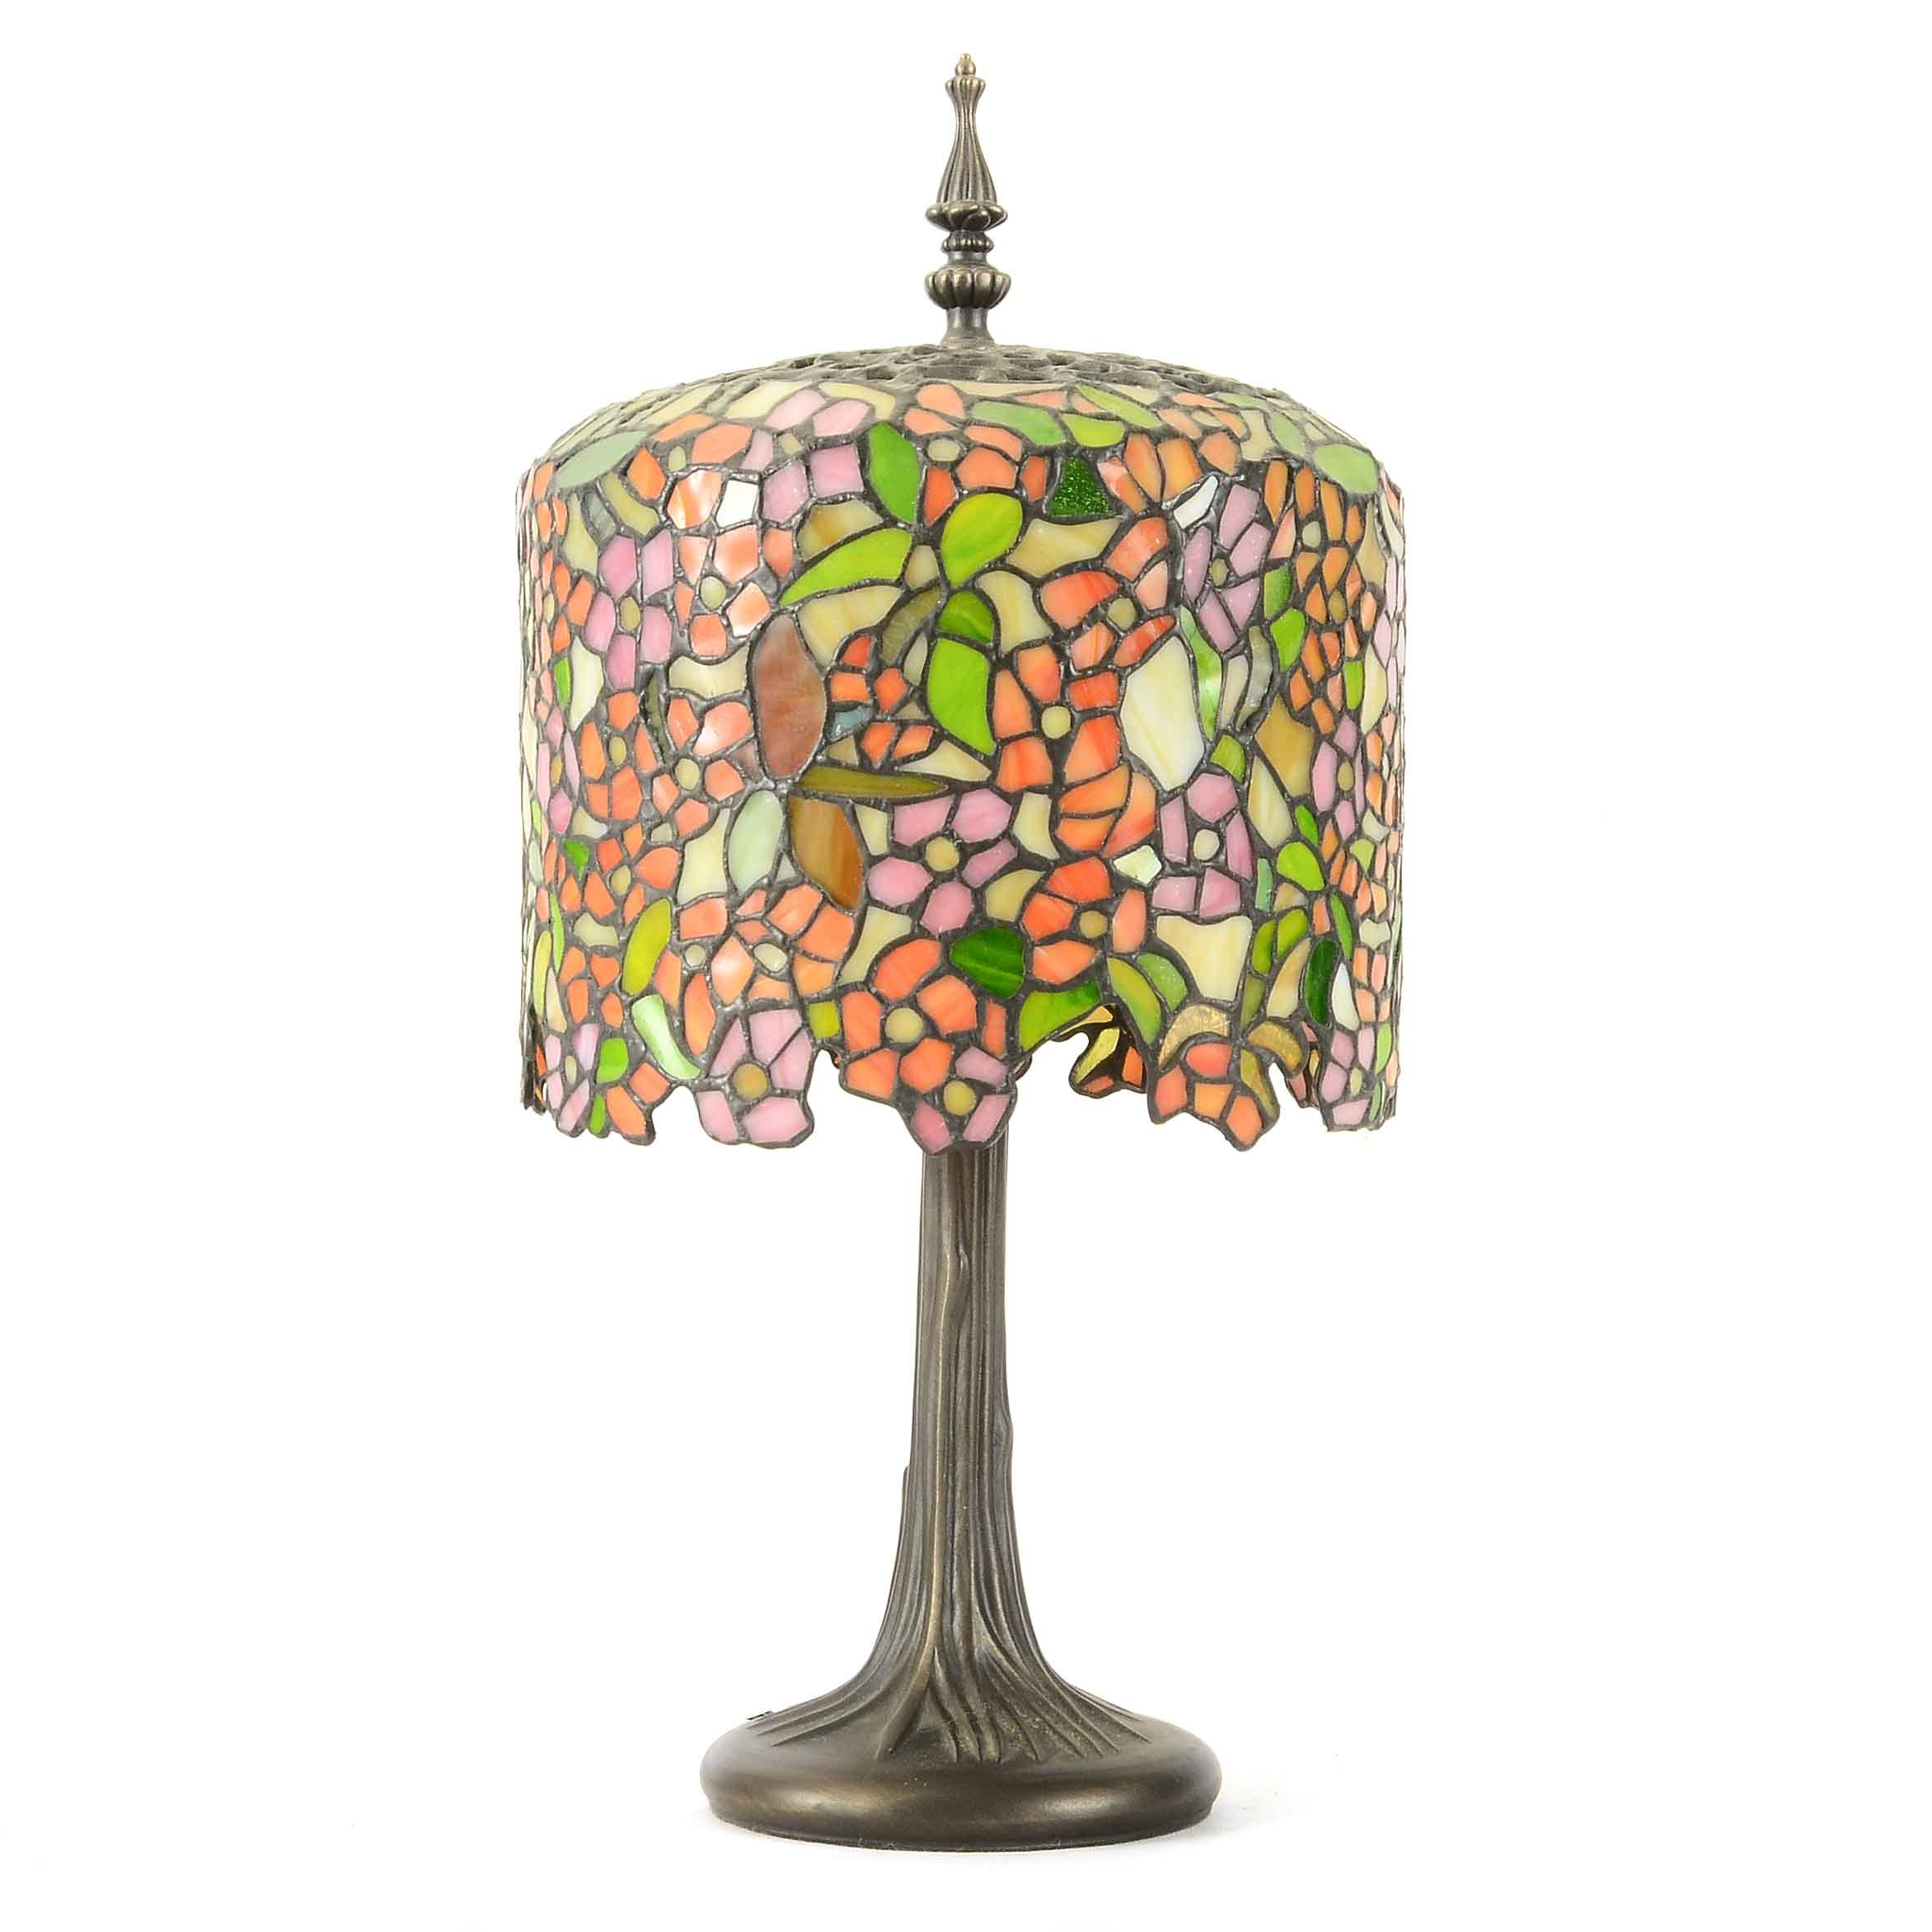 Wisteria Design Stained Glass Table Lamp